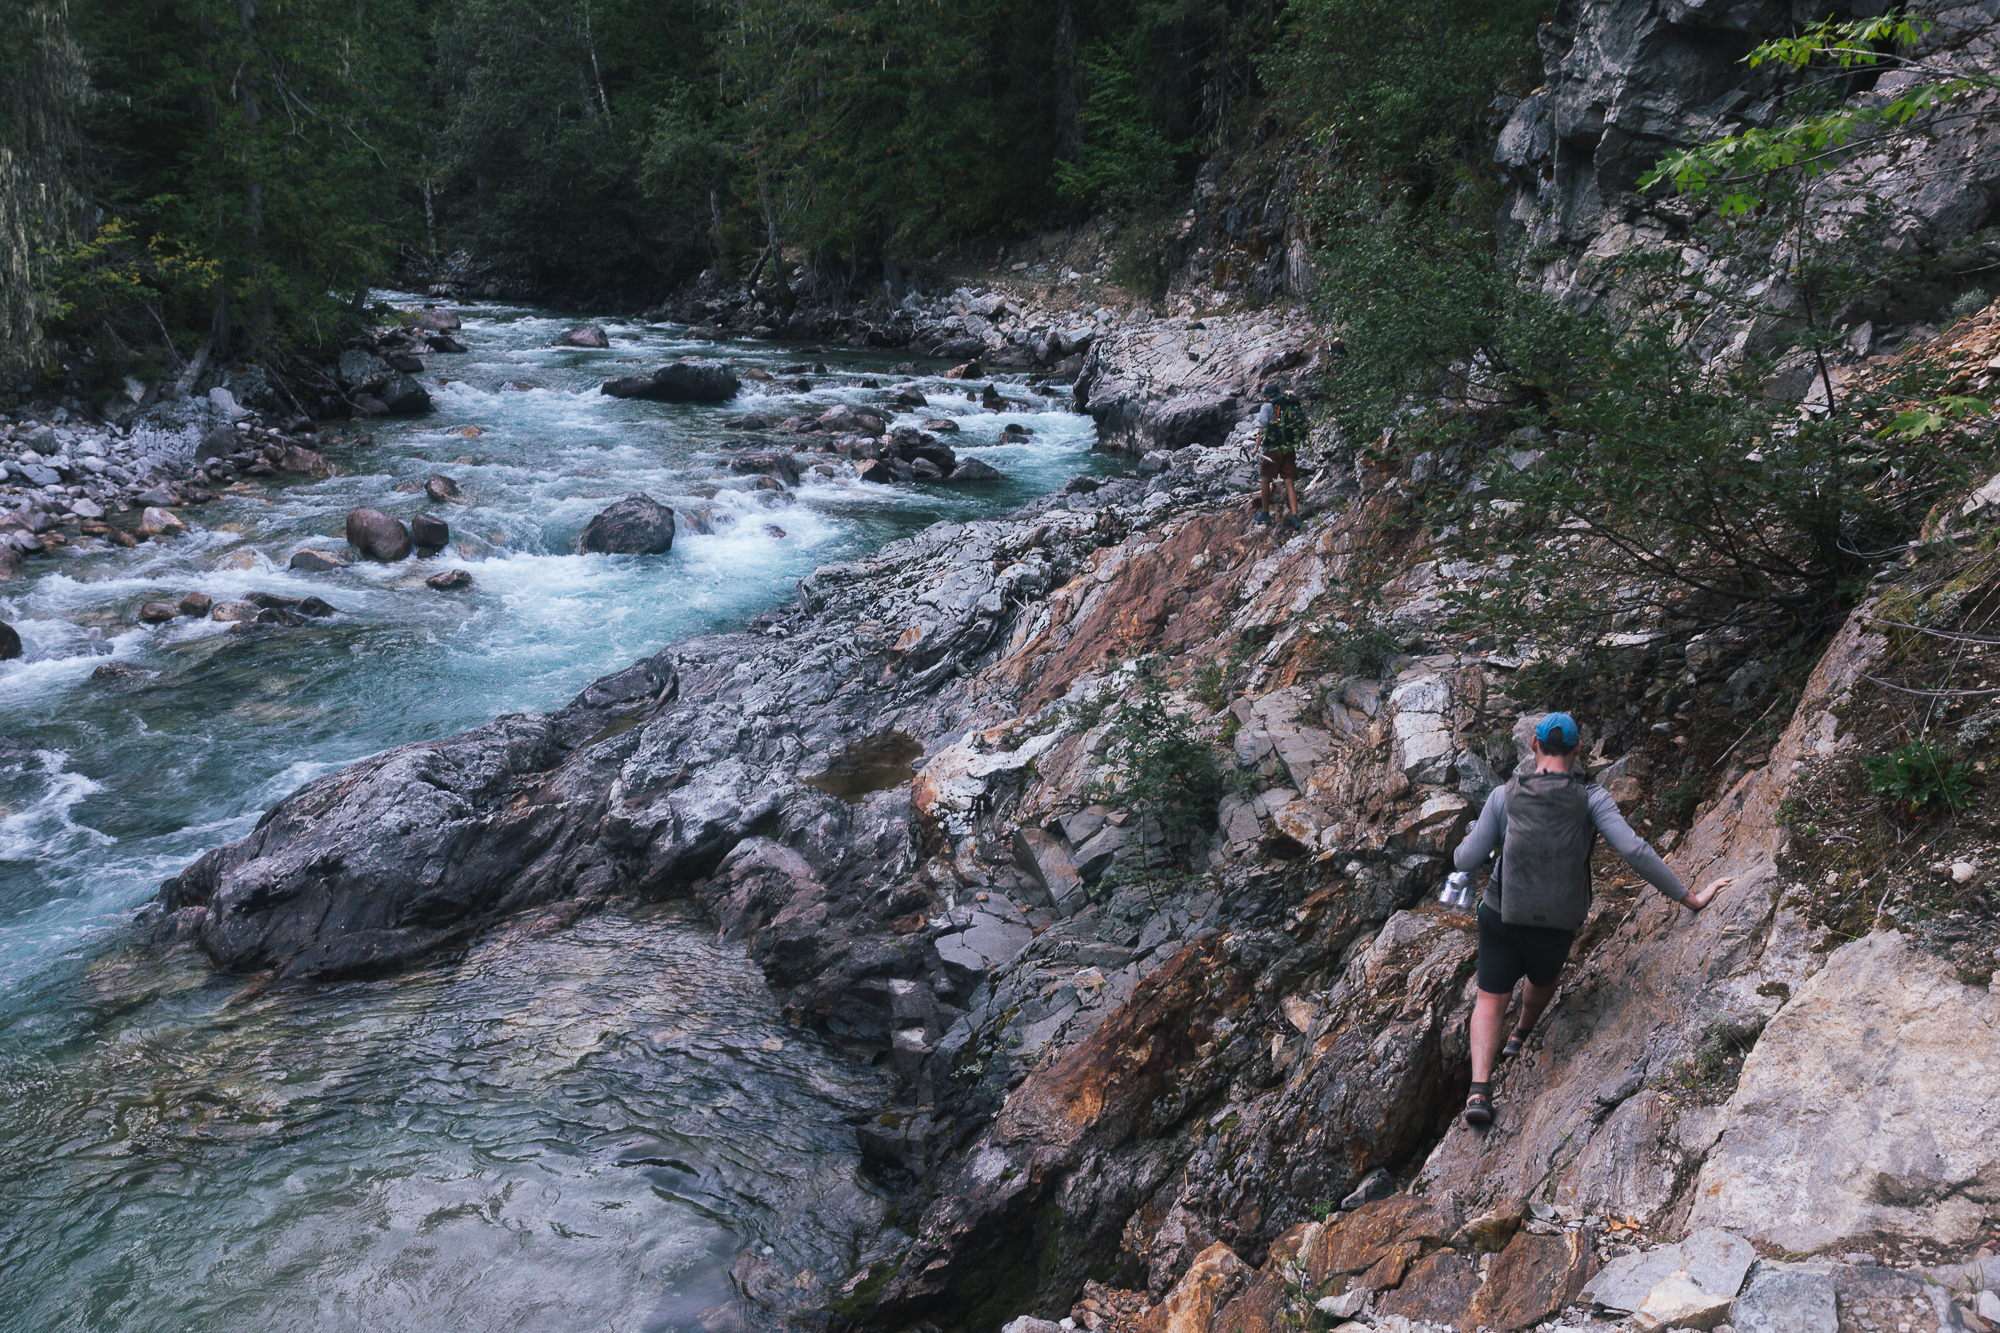 """traversing the """"impassable"""" trail with Trip, Mongo and co."""